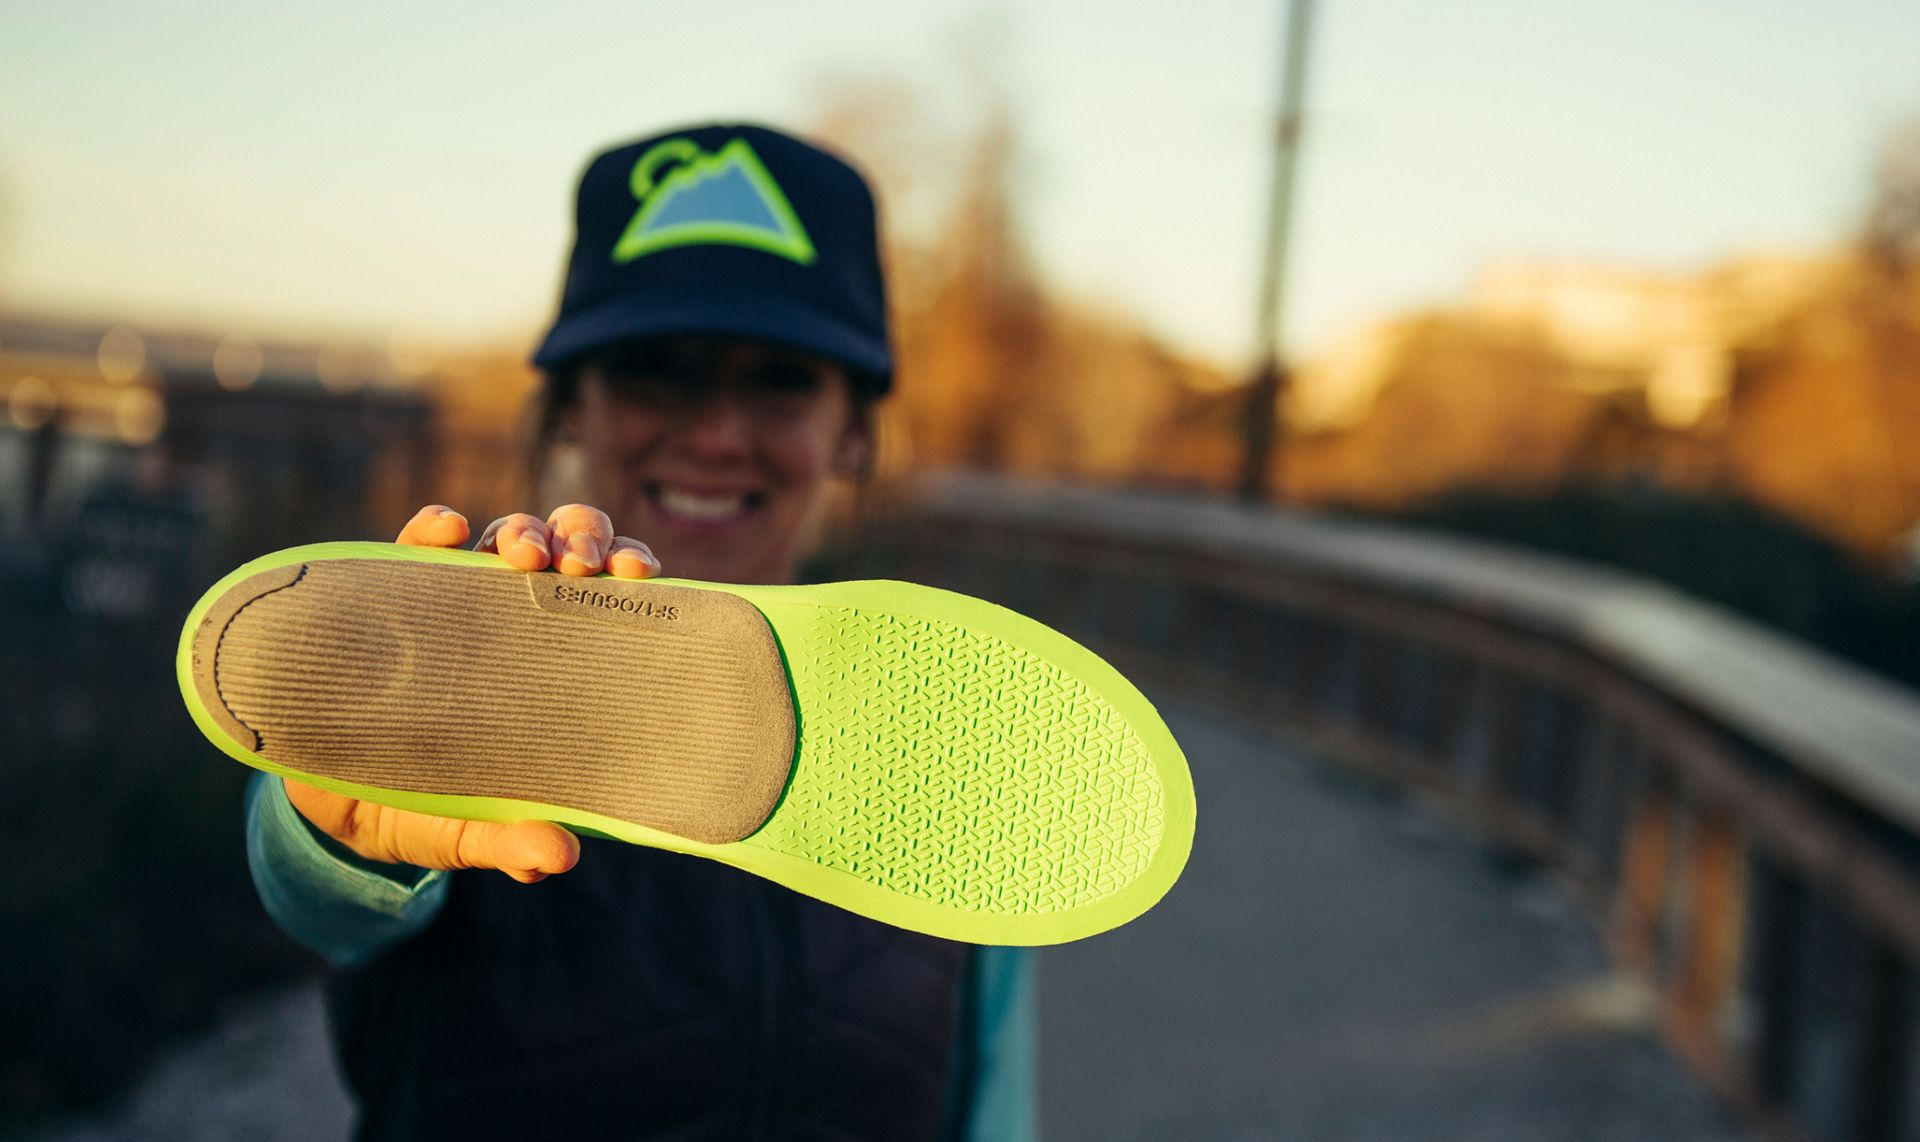 A woman holding a Superfeet ME3D insole